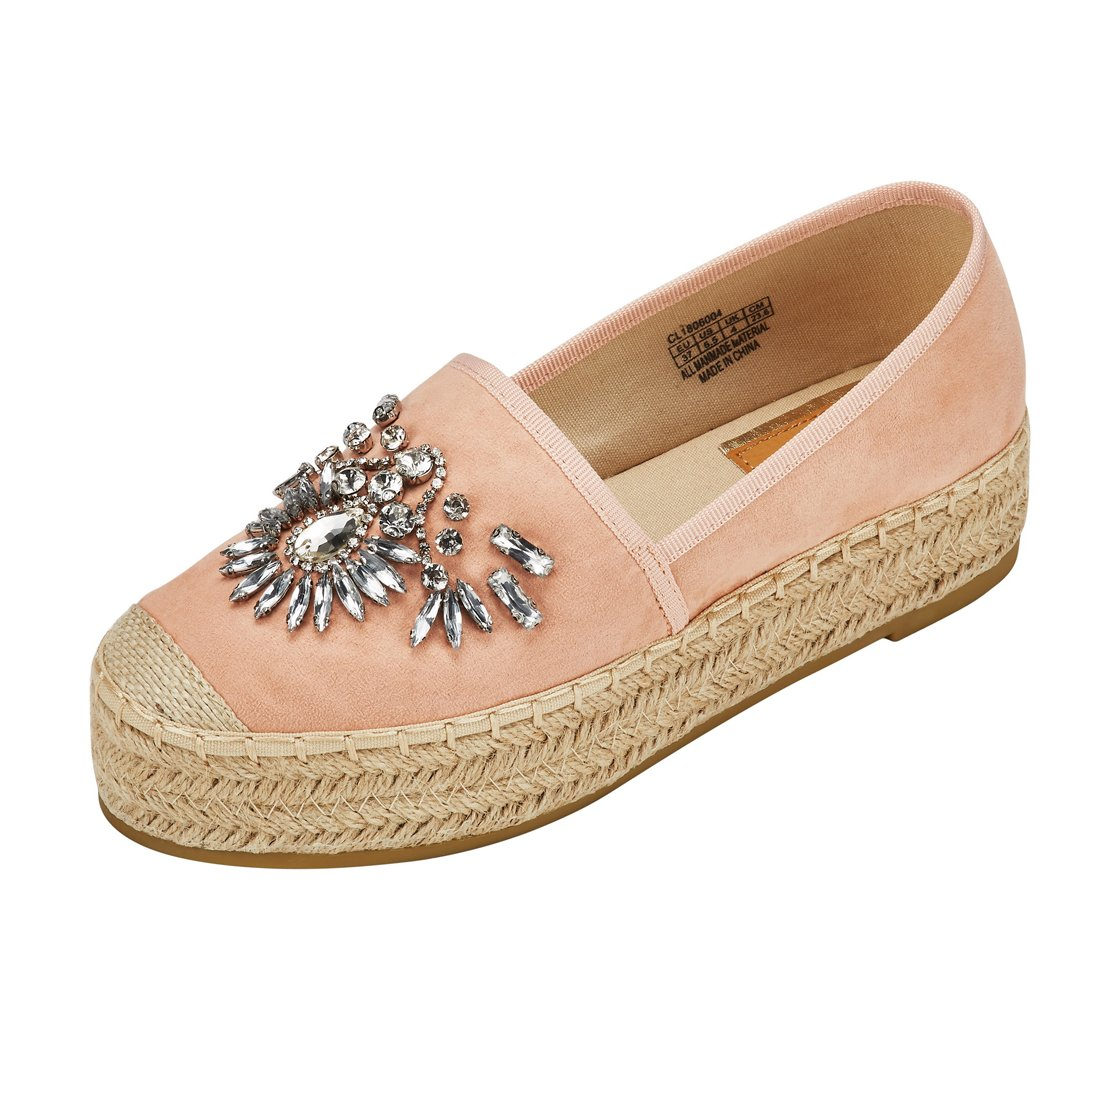 JENN ARDOR Women's Espadrille Flats Casual Sneakers Jeans Platform Slip-On Shoes with Shiny Rhinestone,9 B(M) US (25.1CM),Pink Fabric